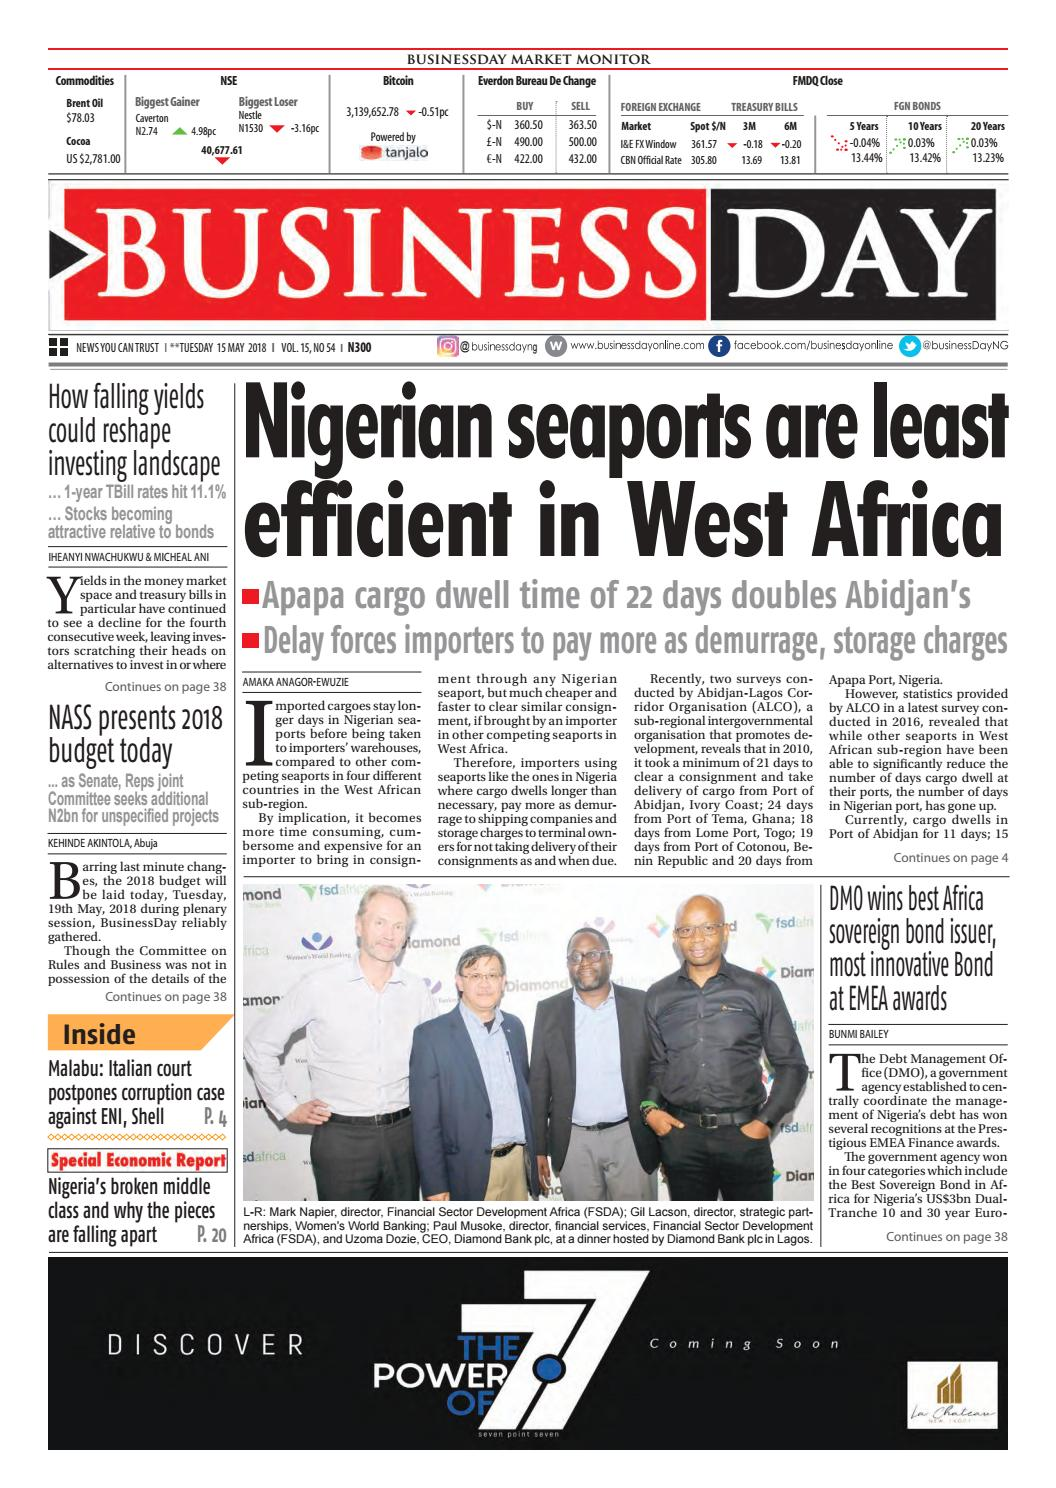 Businessday 15 may 2018 by BusinessDay - issuu